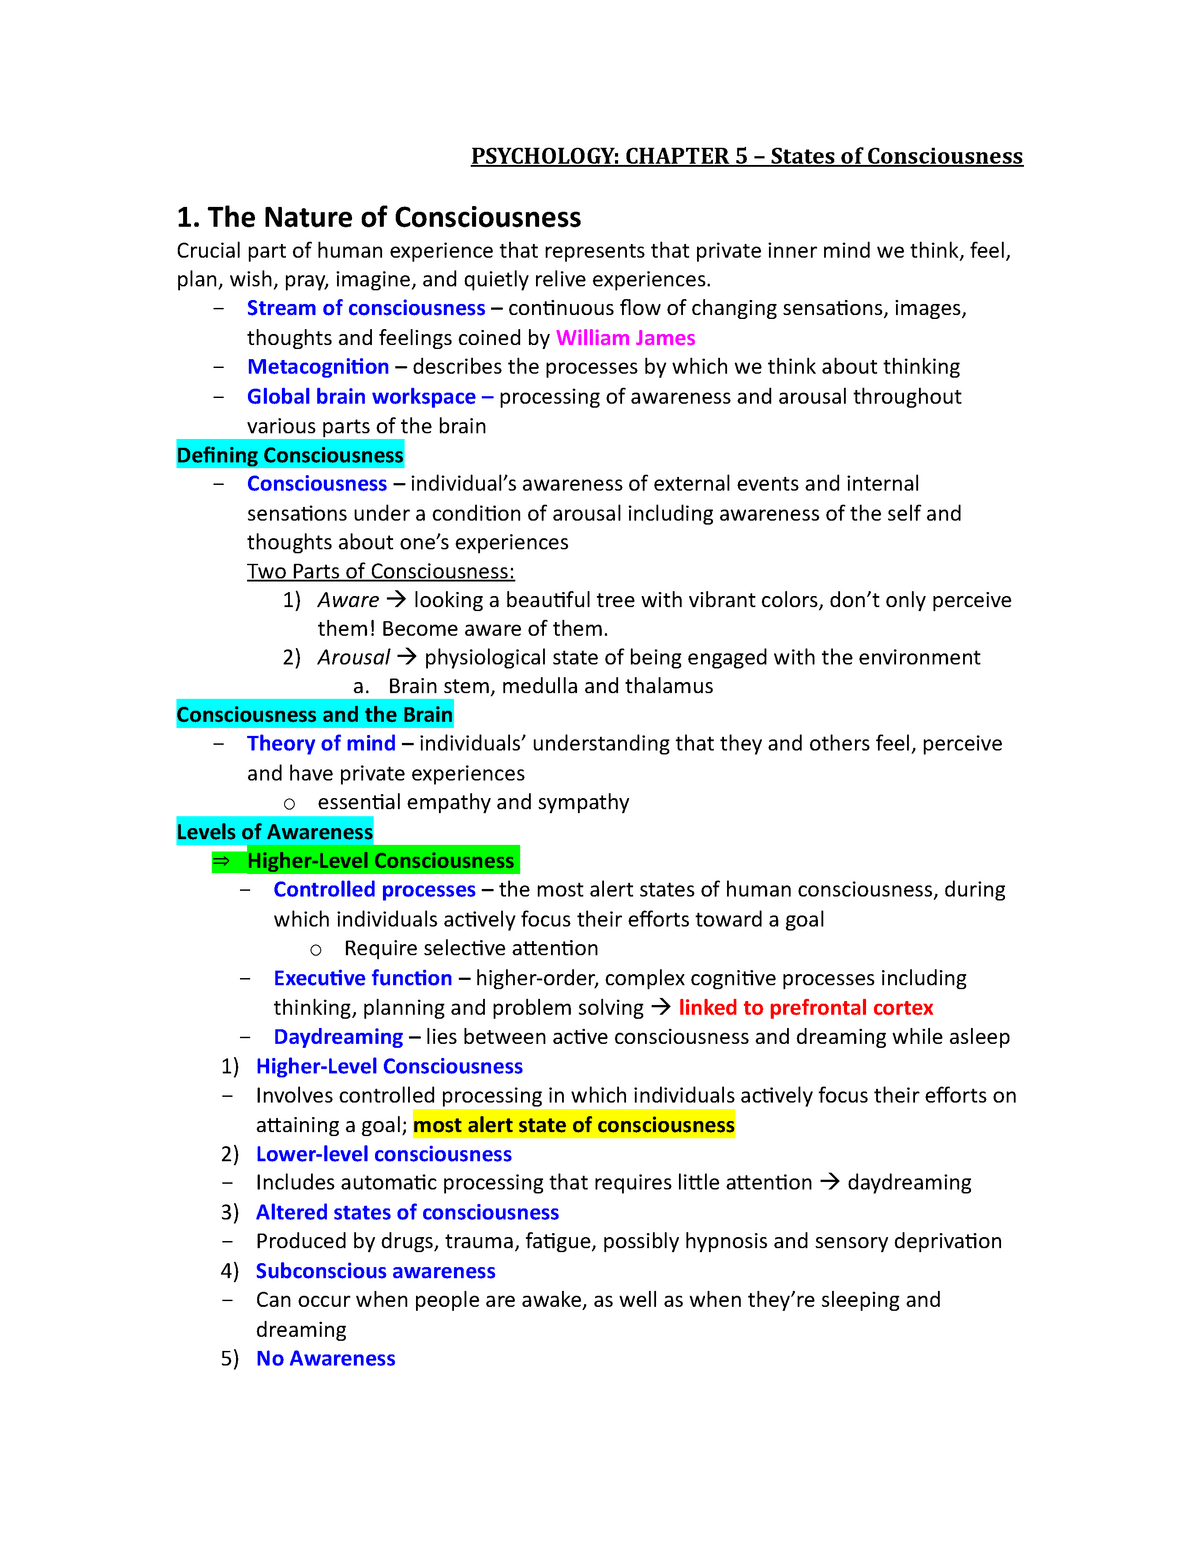 Chapter 5 Notes - States of Consciousness - PSY 1113: Elements Of